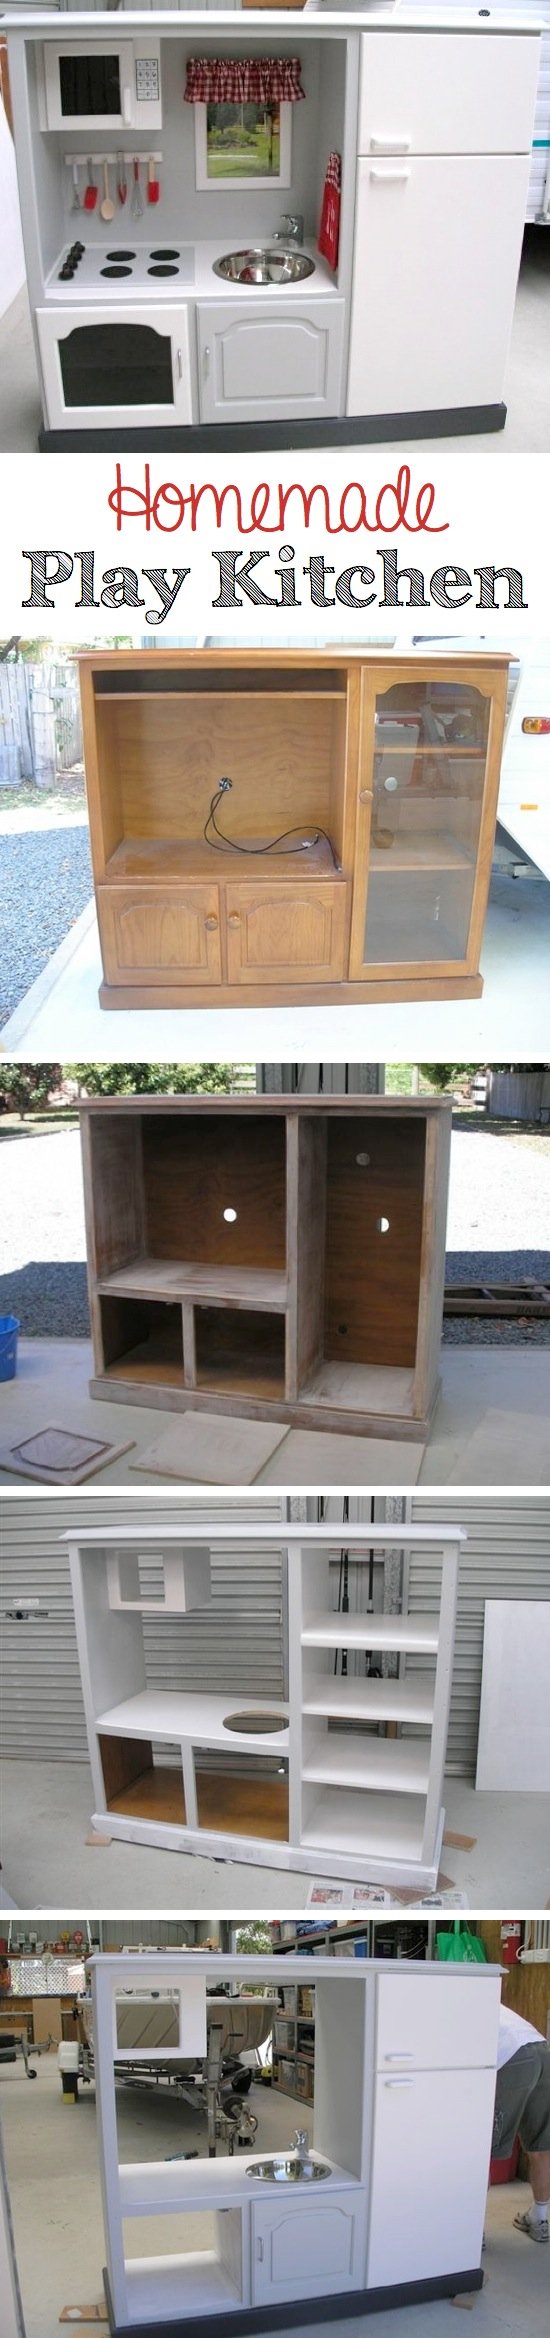 Homemade Play Kitchen   Craft By Photo